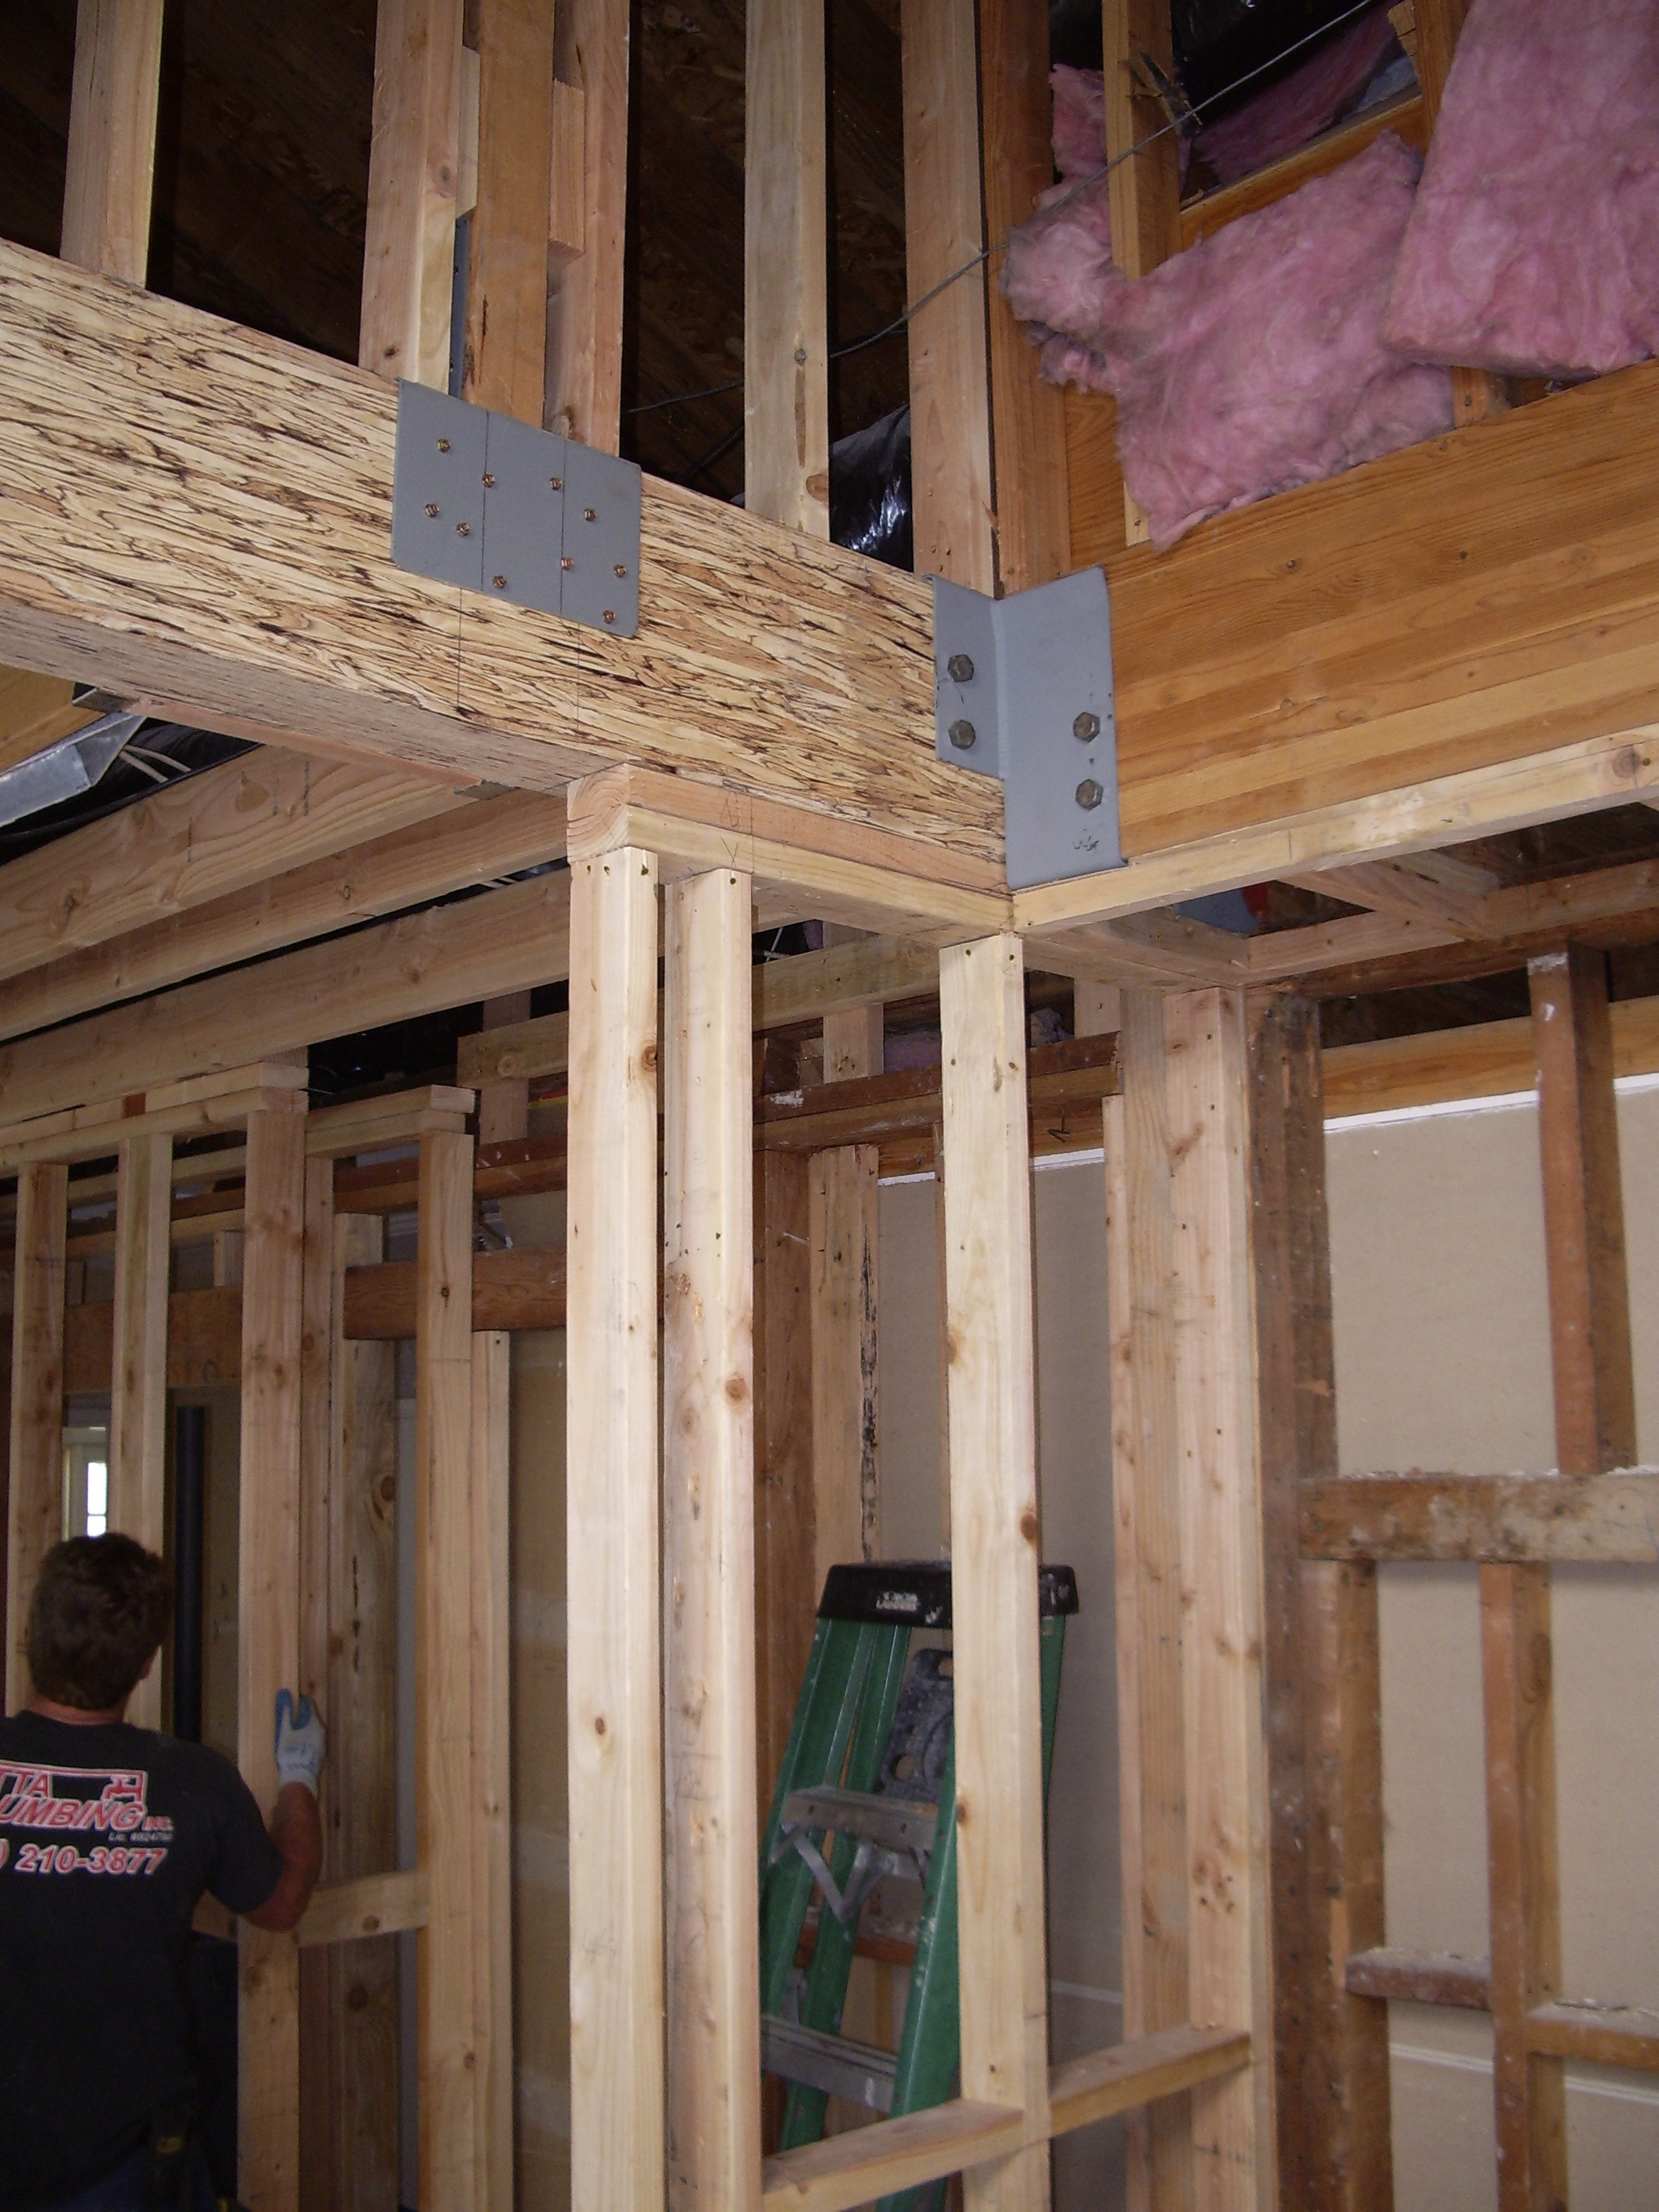 There were several bearing walls removed requiring engineered components.